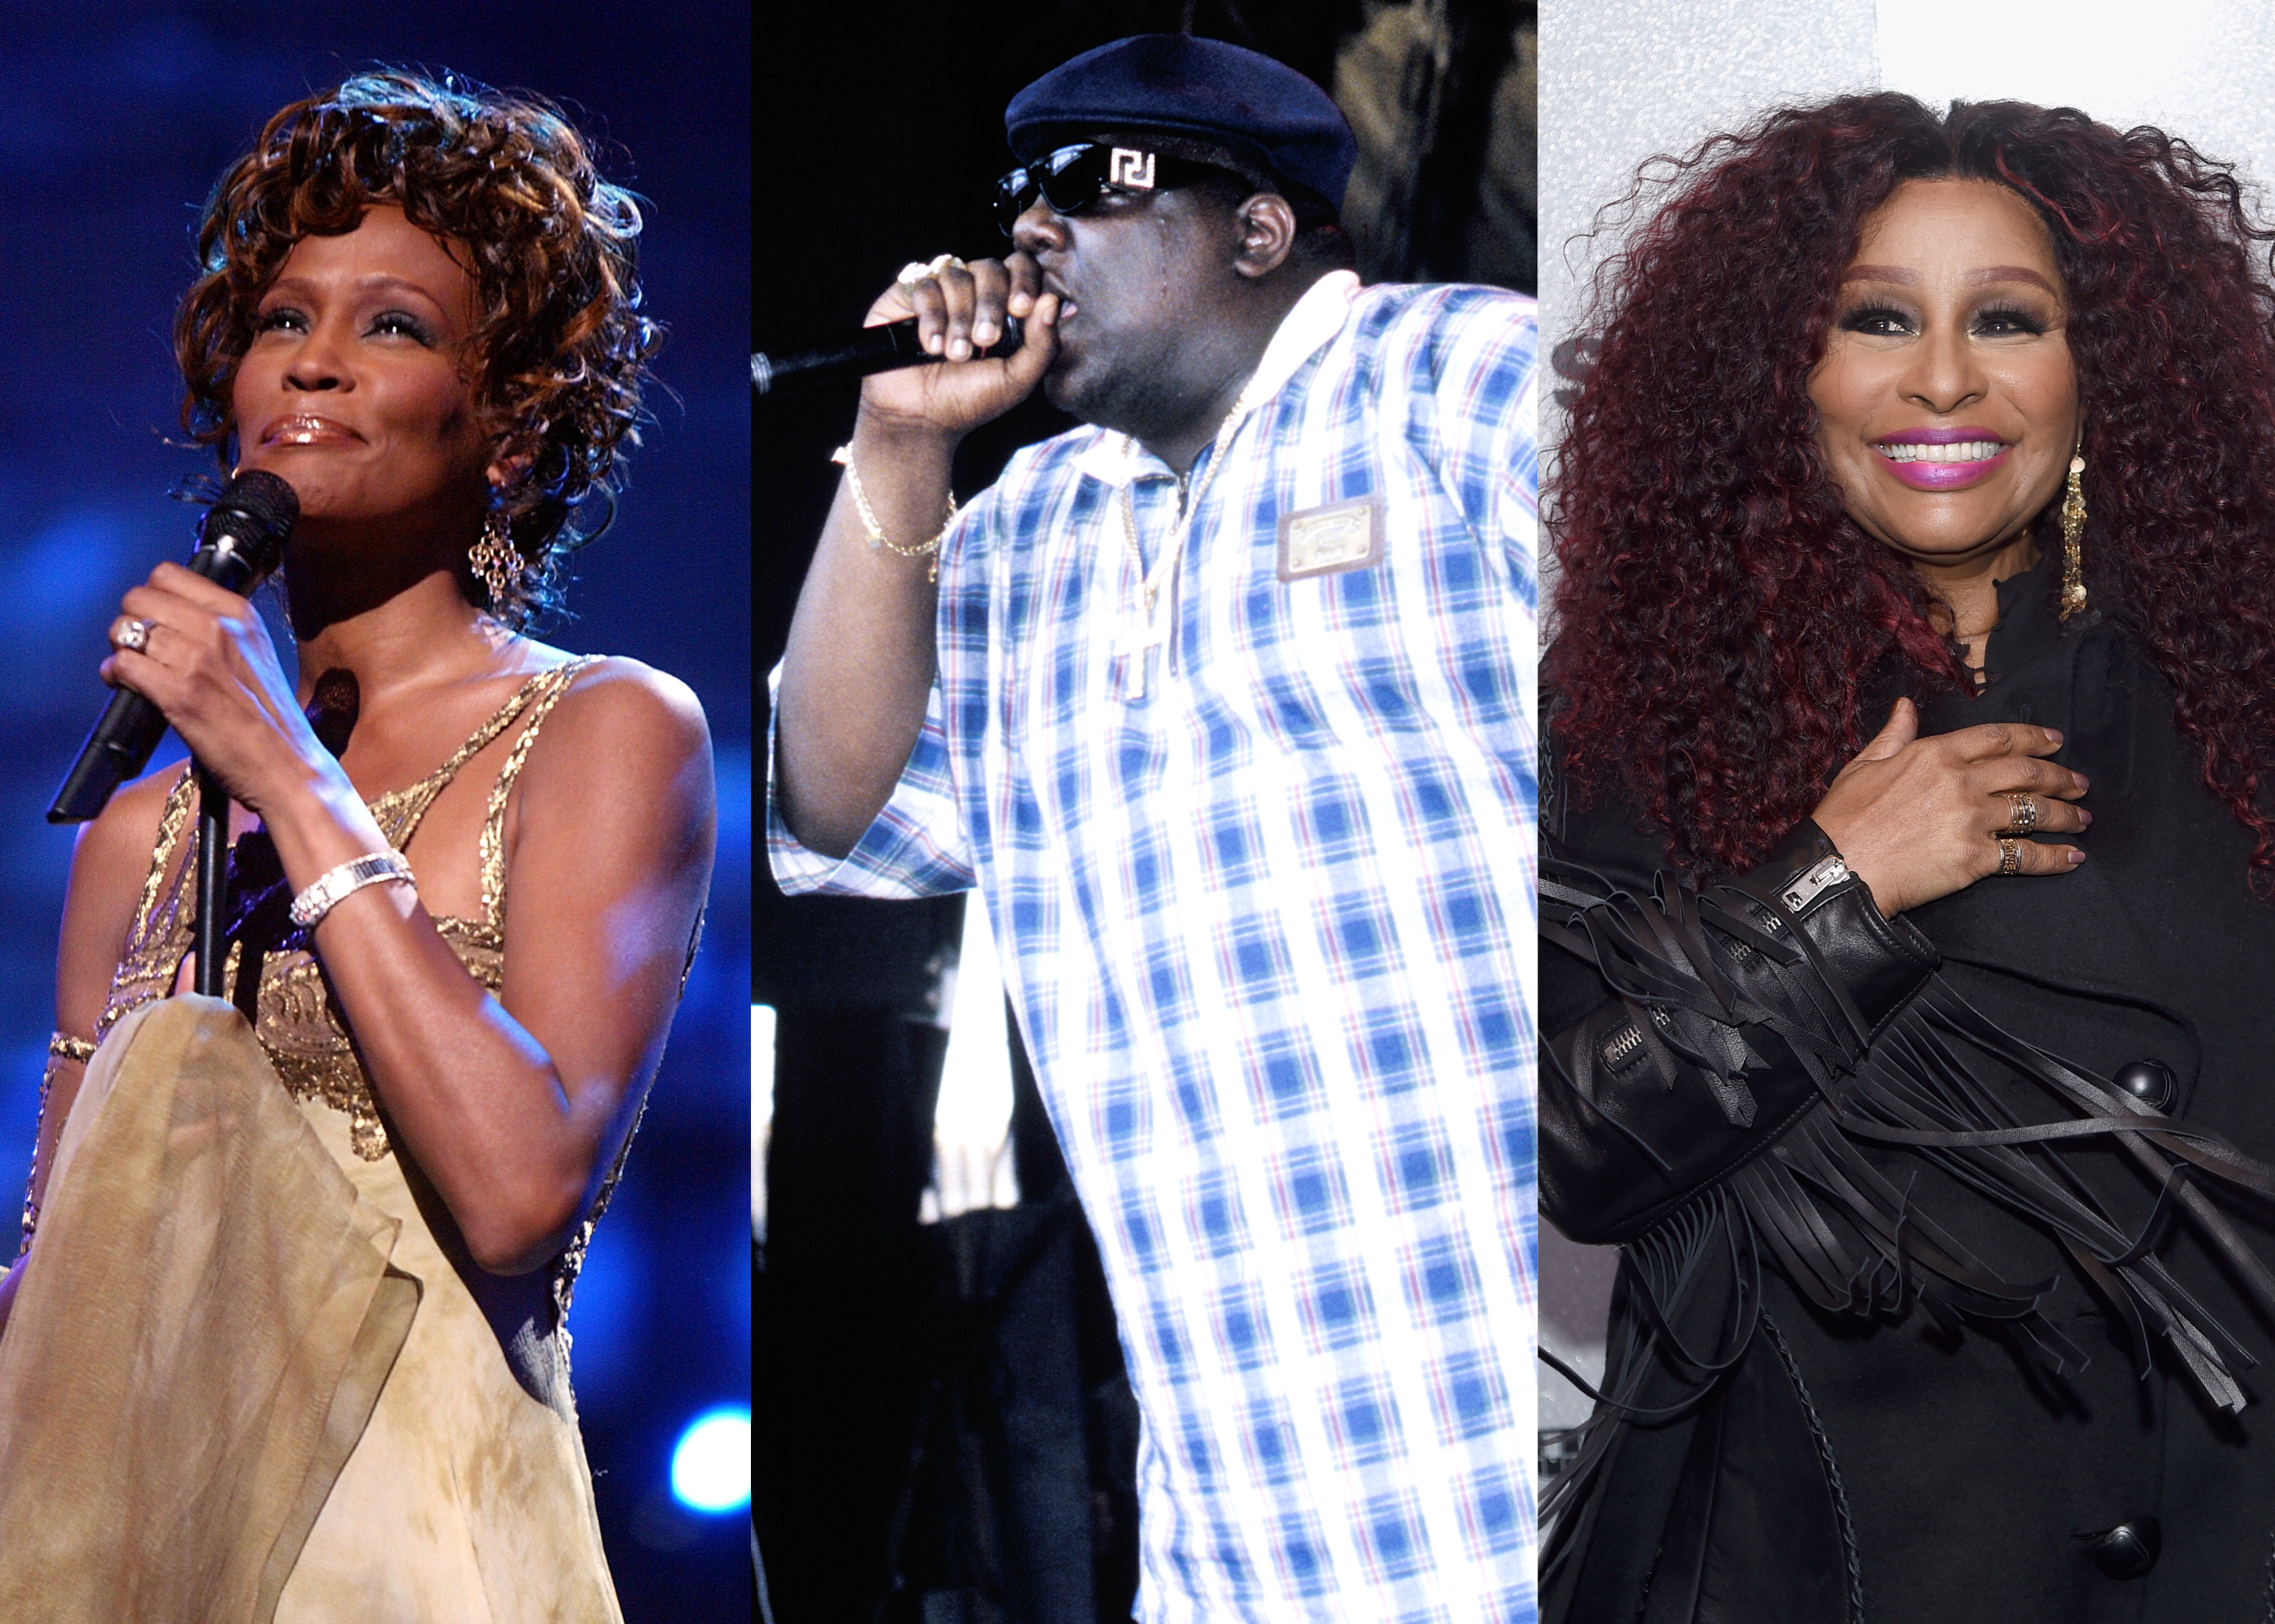 The nominees for the 2020 Rock & Roll Hall of Fame has been released and Chaka Khan, Whitney Houston and The Notorious B.I.G are among the nominees